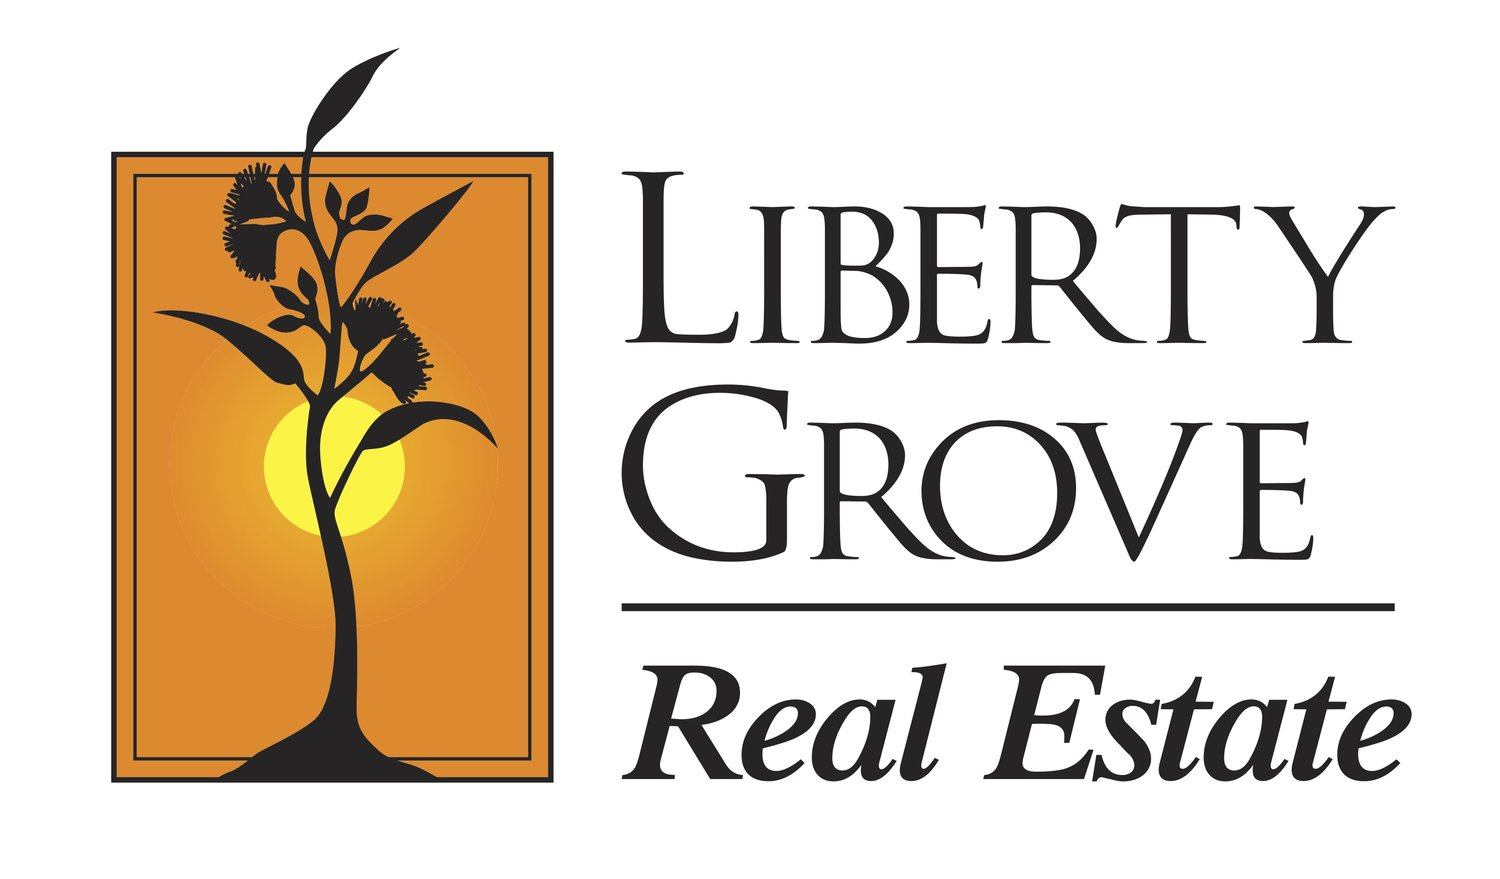 LIBERTY GROVE REAL ESTATE